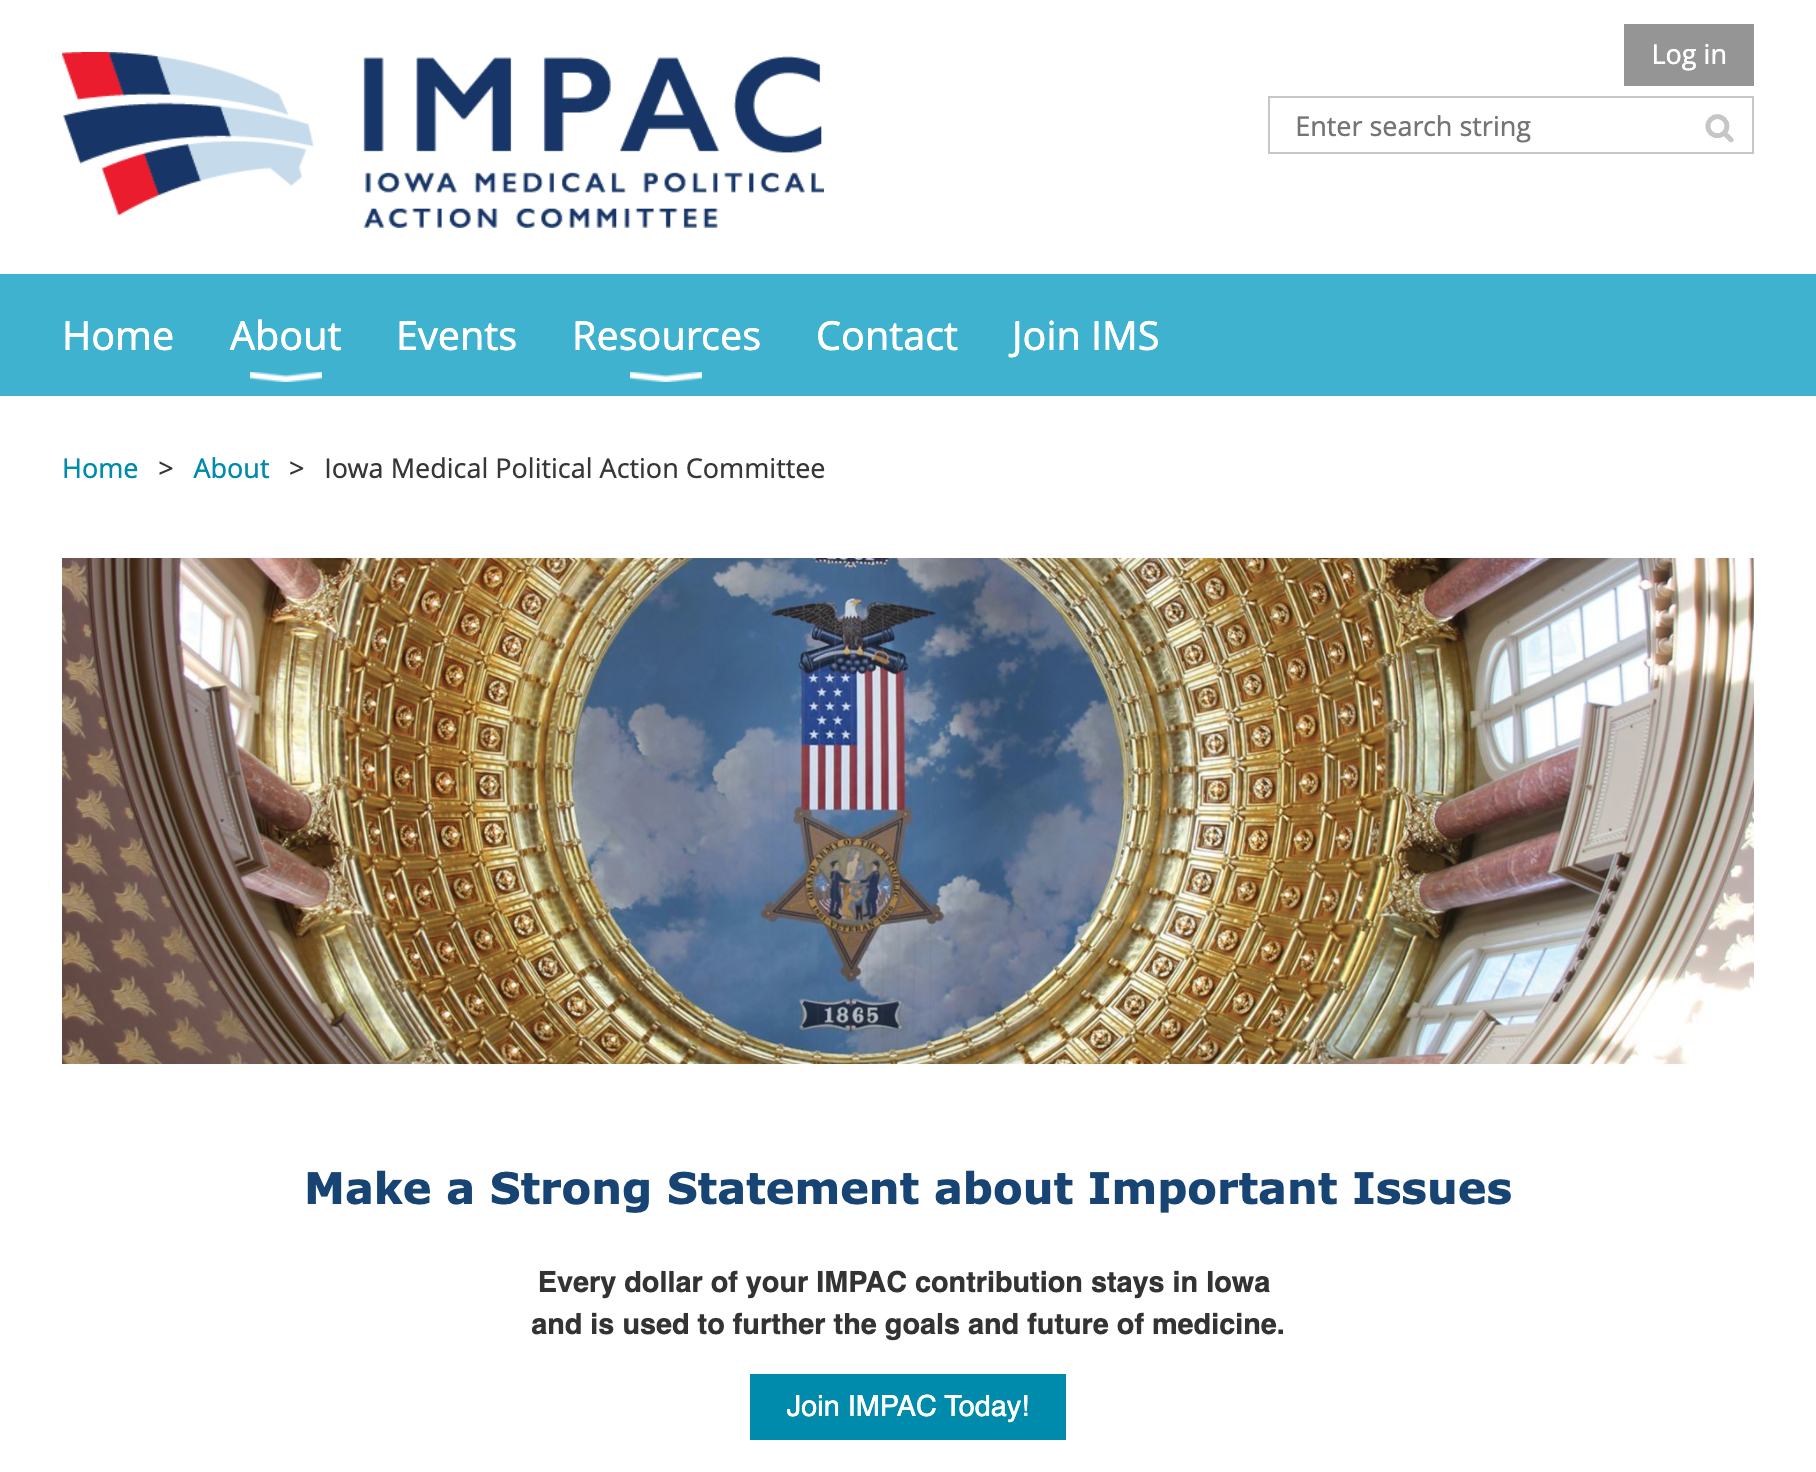 Iowa Medical Political Action Committee